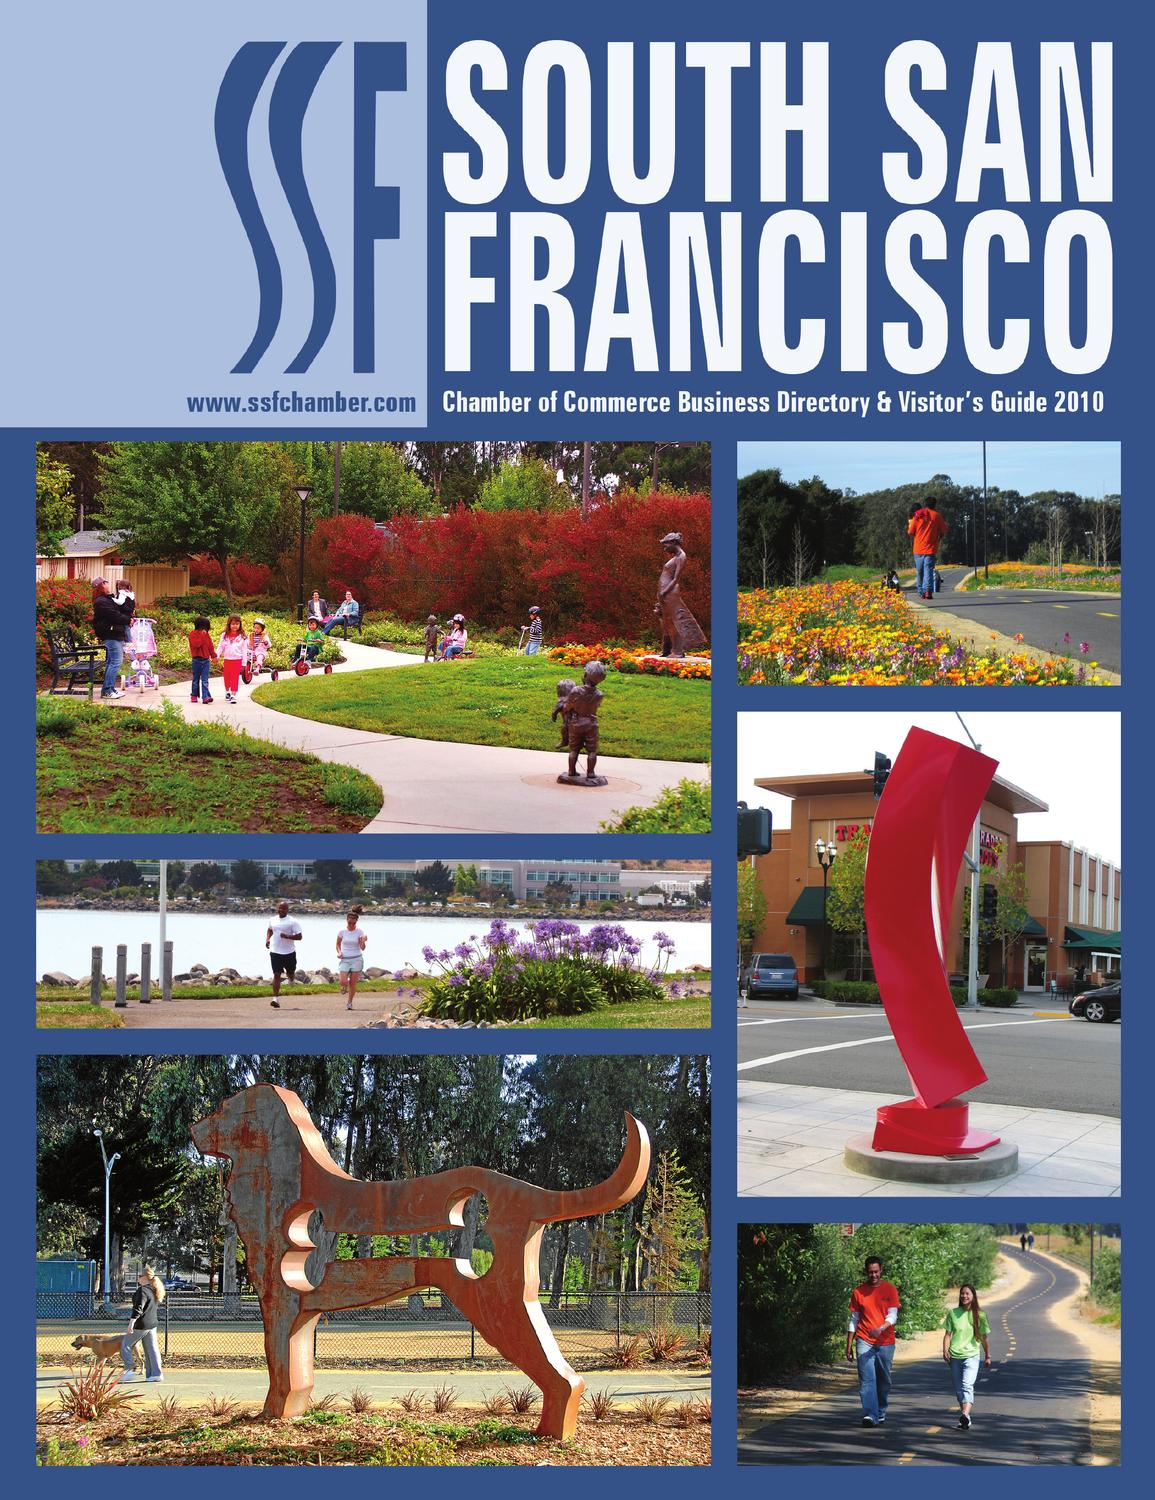 westerville business directory and community guide 2015 by south san francisco 2010 business directory and ors guide